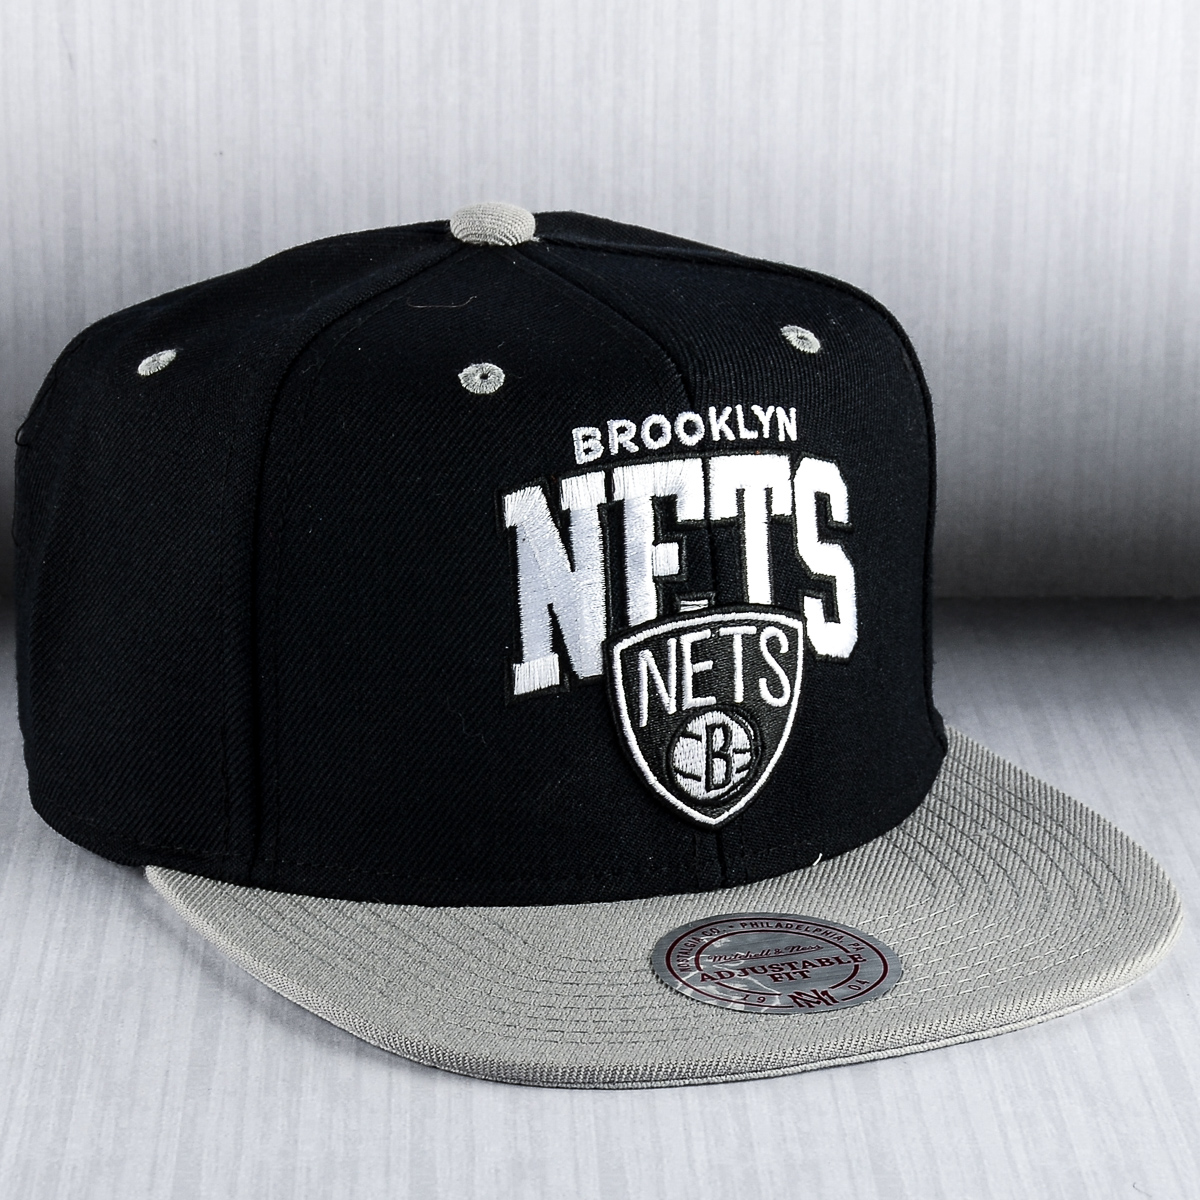 brand new d87e4 df0cb Mitchell   Ness NBA Brooklyn Nets Team Arch Snapback Cap - NBA Shop  Brooklyn Nets Merchandise - Superfanas.lt